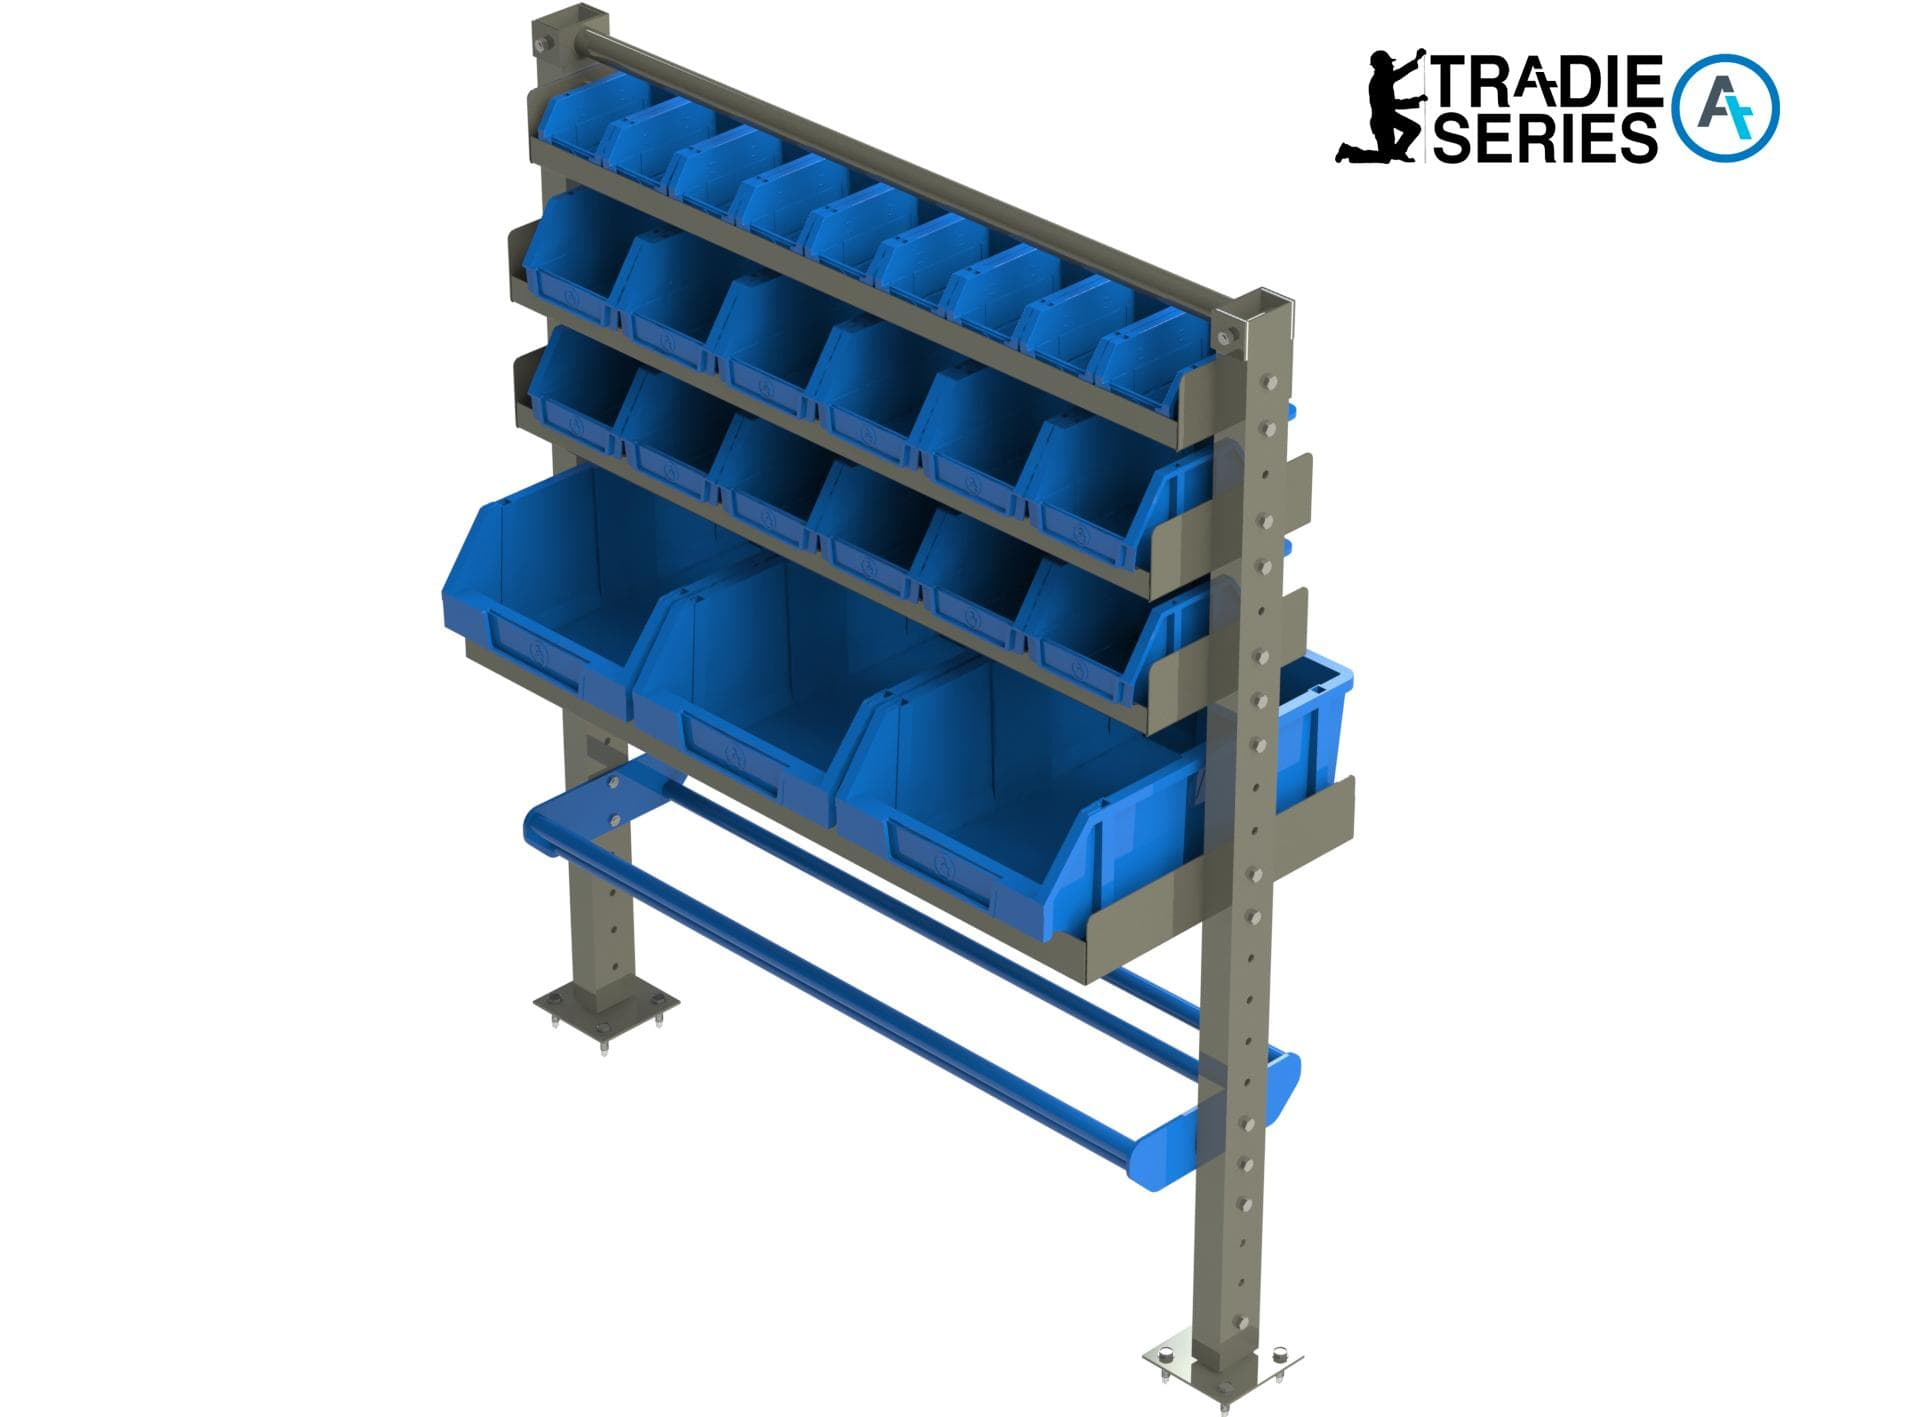 Trade Shelving cable holder